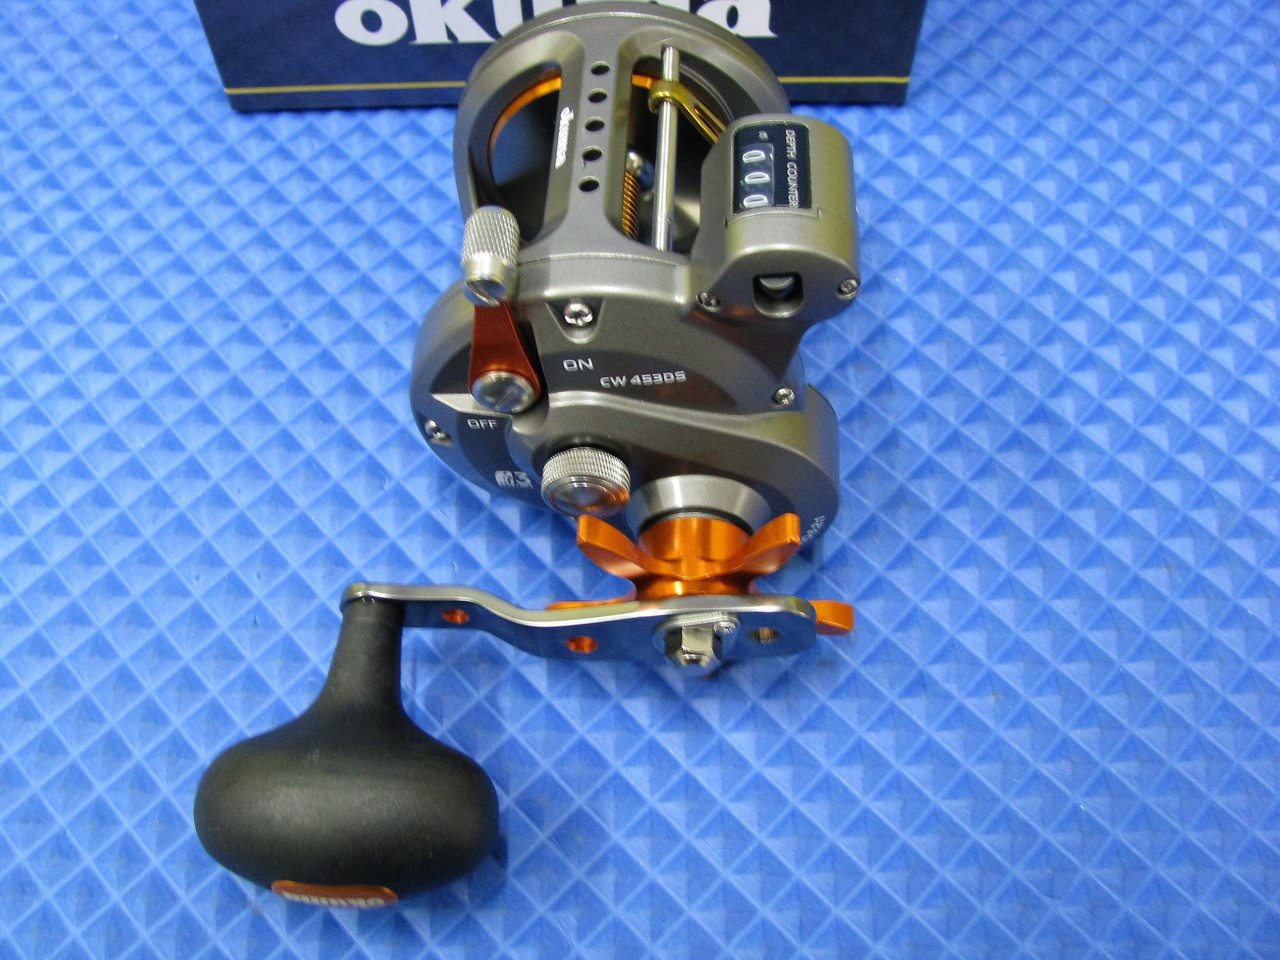 Okuma Cold Water HI Speed Line Counter Trolling Reel CW 453DS